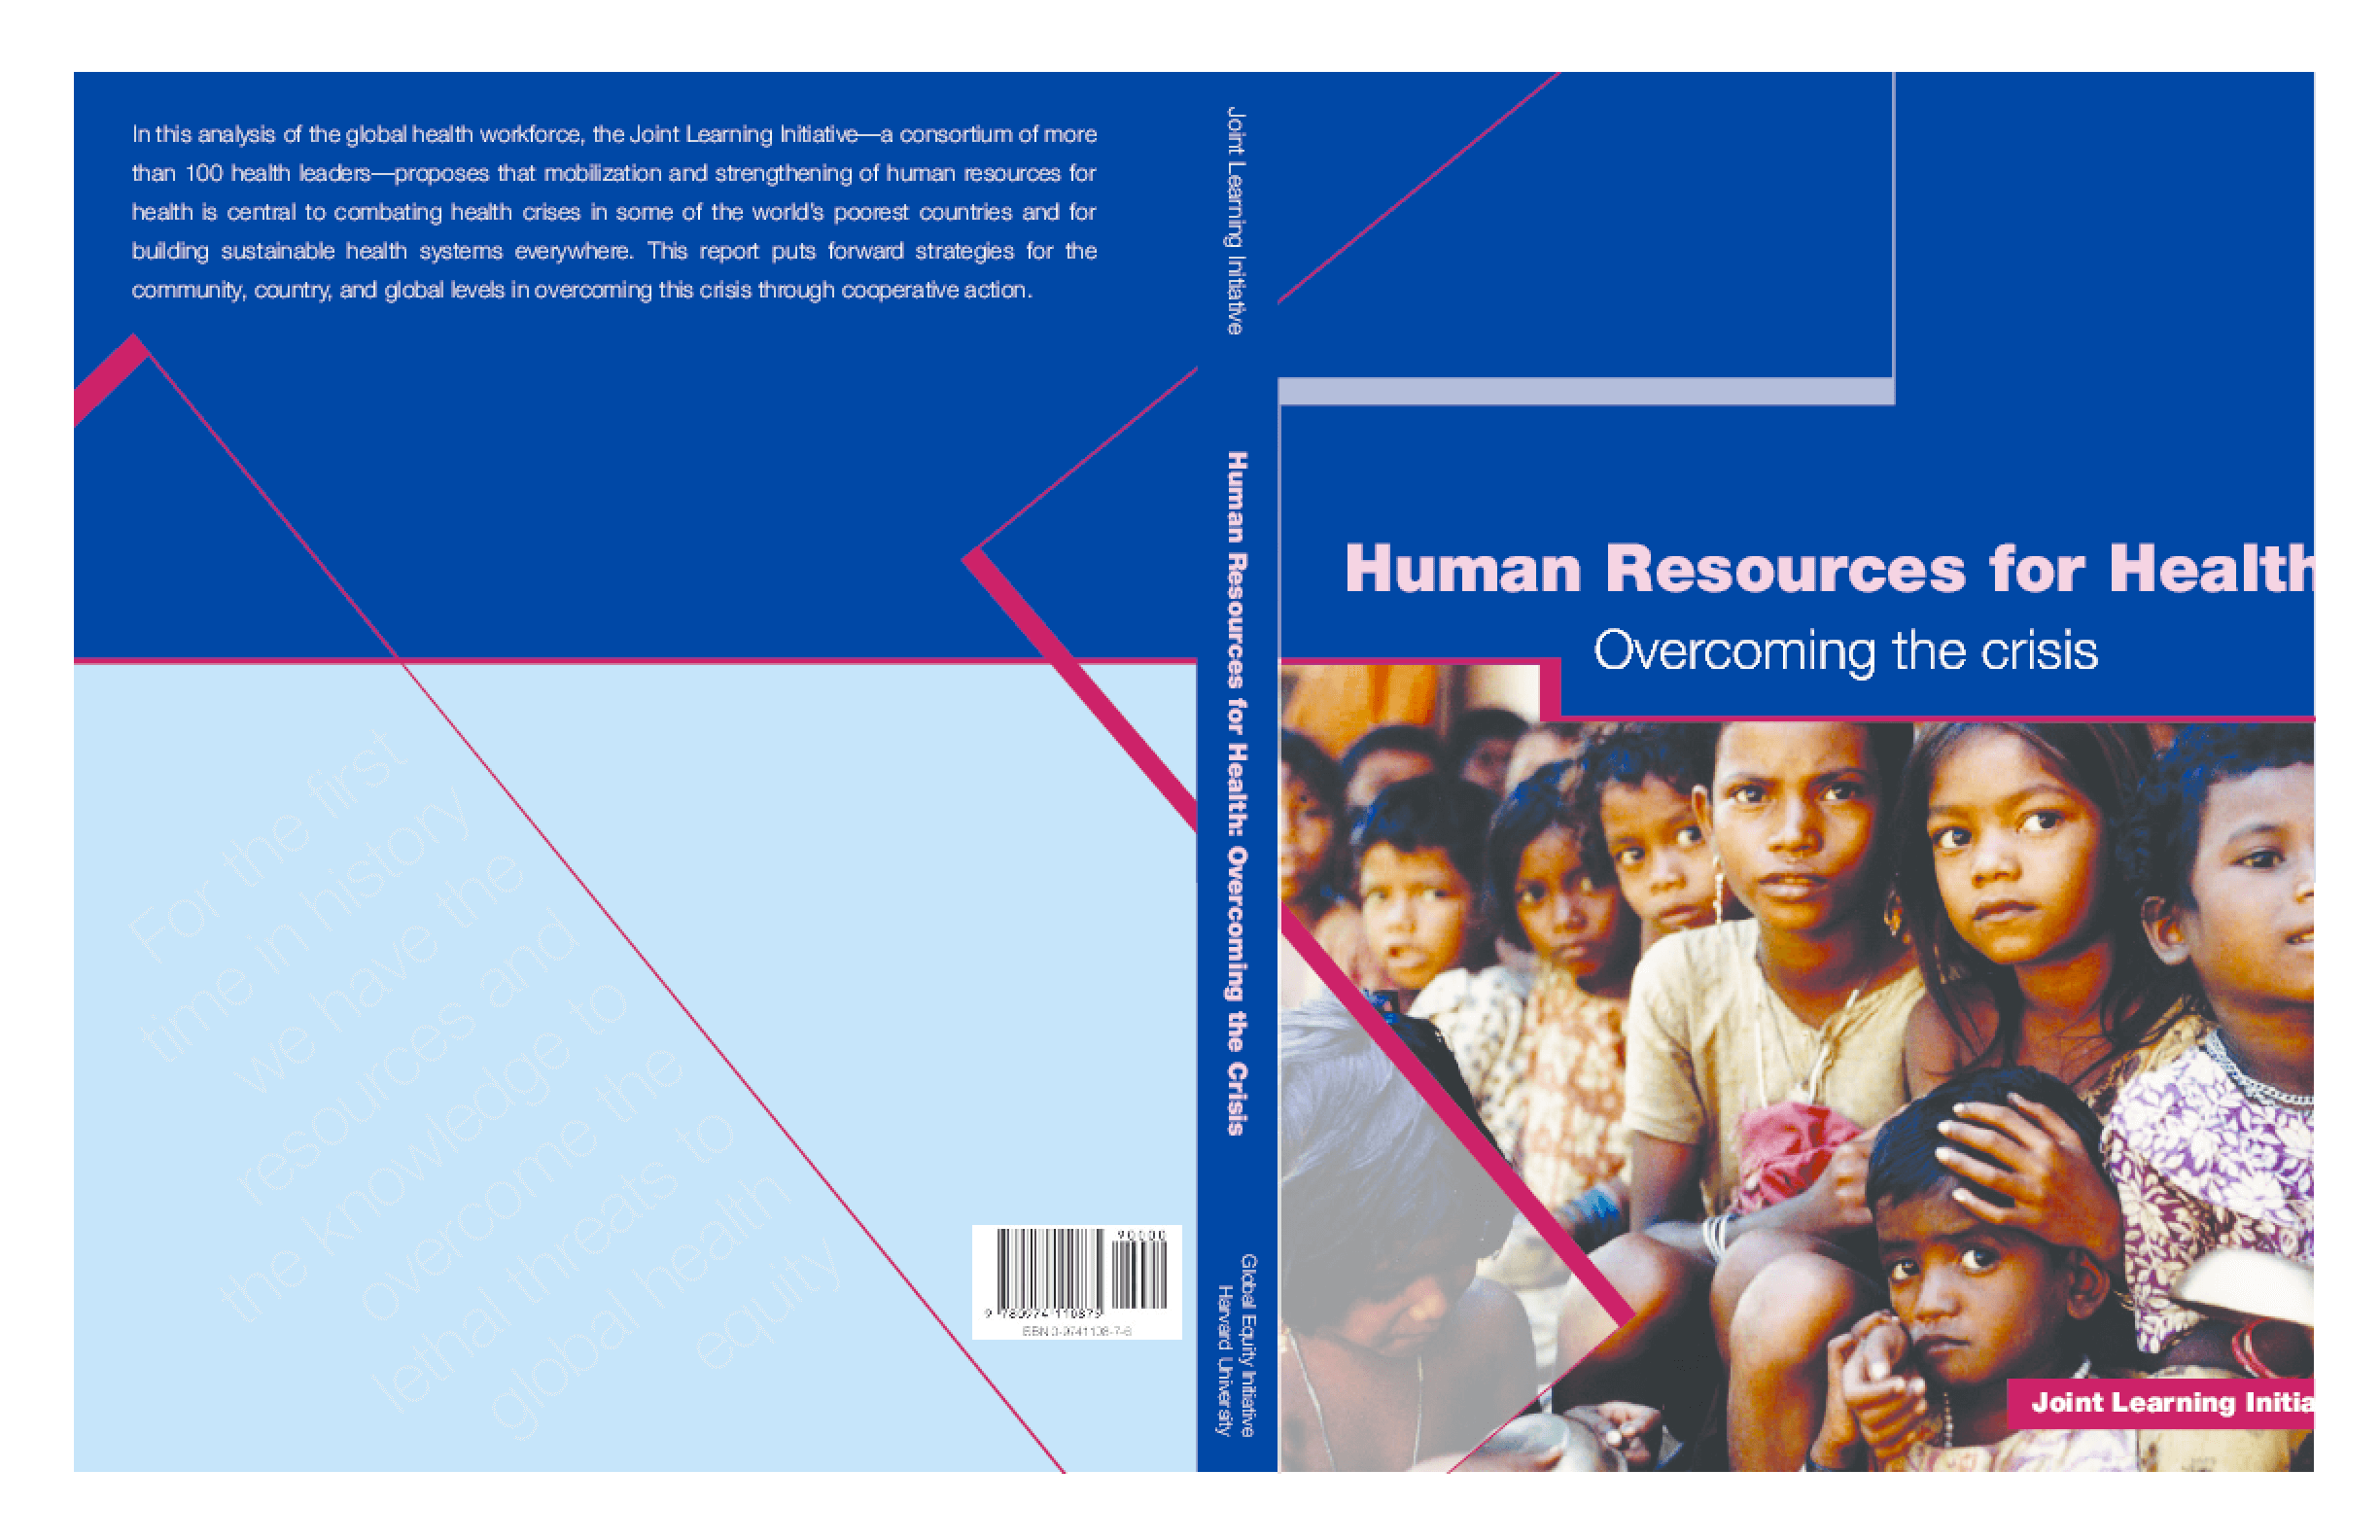 Human Resources for Health: Overcoming the Crisis